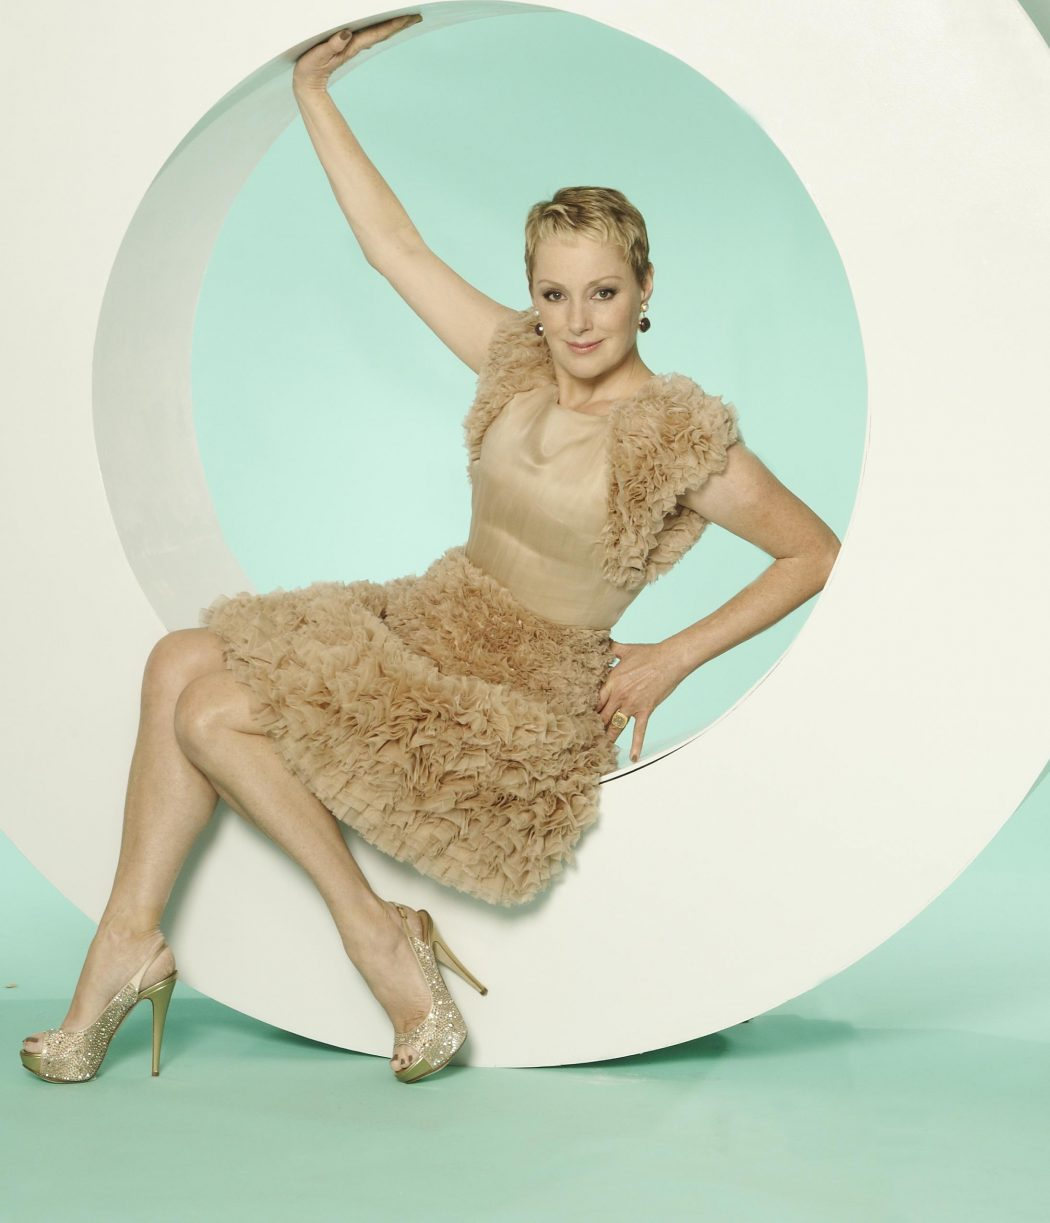 Sally-Dynevor-Feet-716495 15 Courage Celebrities Who Battled Cancer And Won